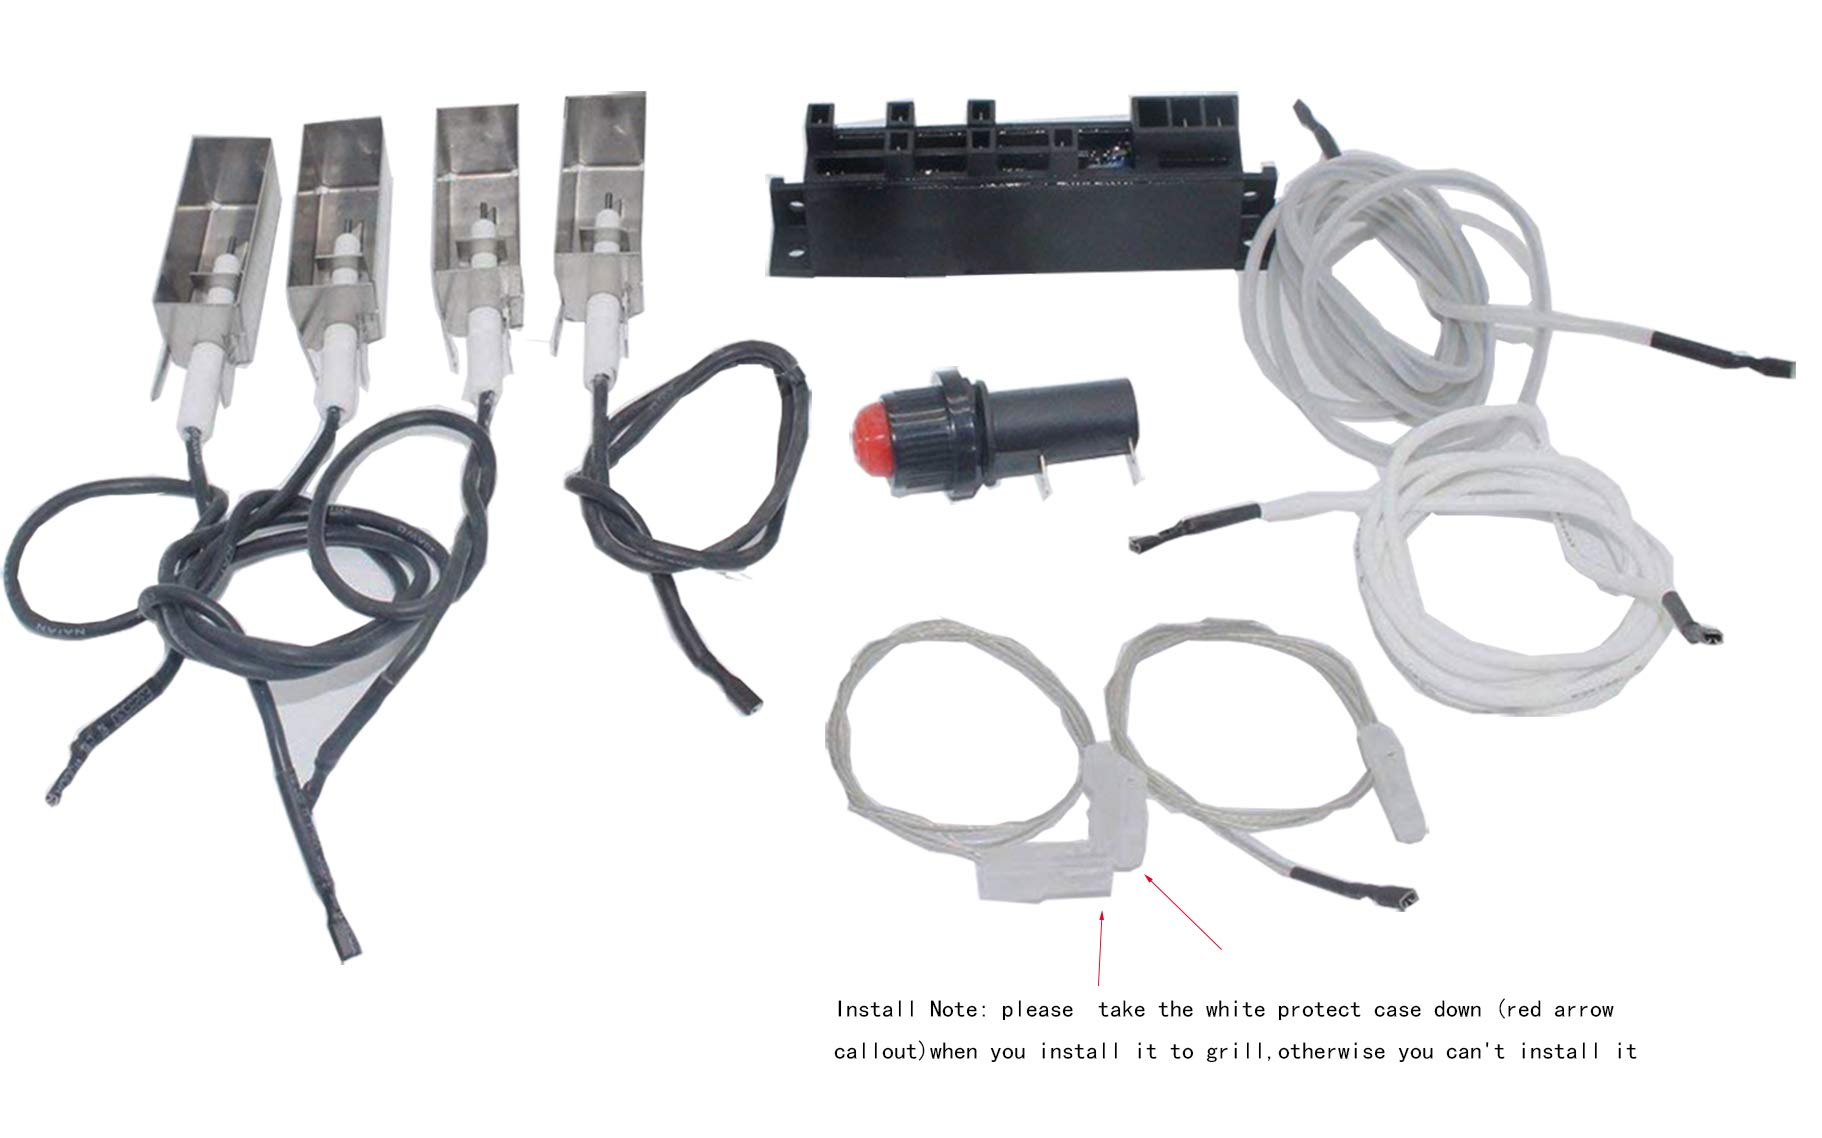 Broilmann BBQ Grill Igniter Kit for Summit Gold/Platinum D/D6, Weber # 42326 (Does NOT Include Side/AUX Burner Components) by Broilmann (Image #2)